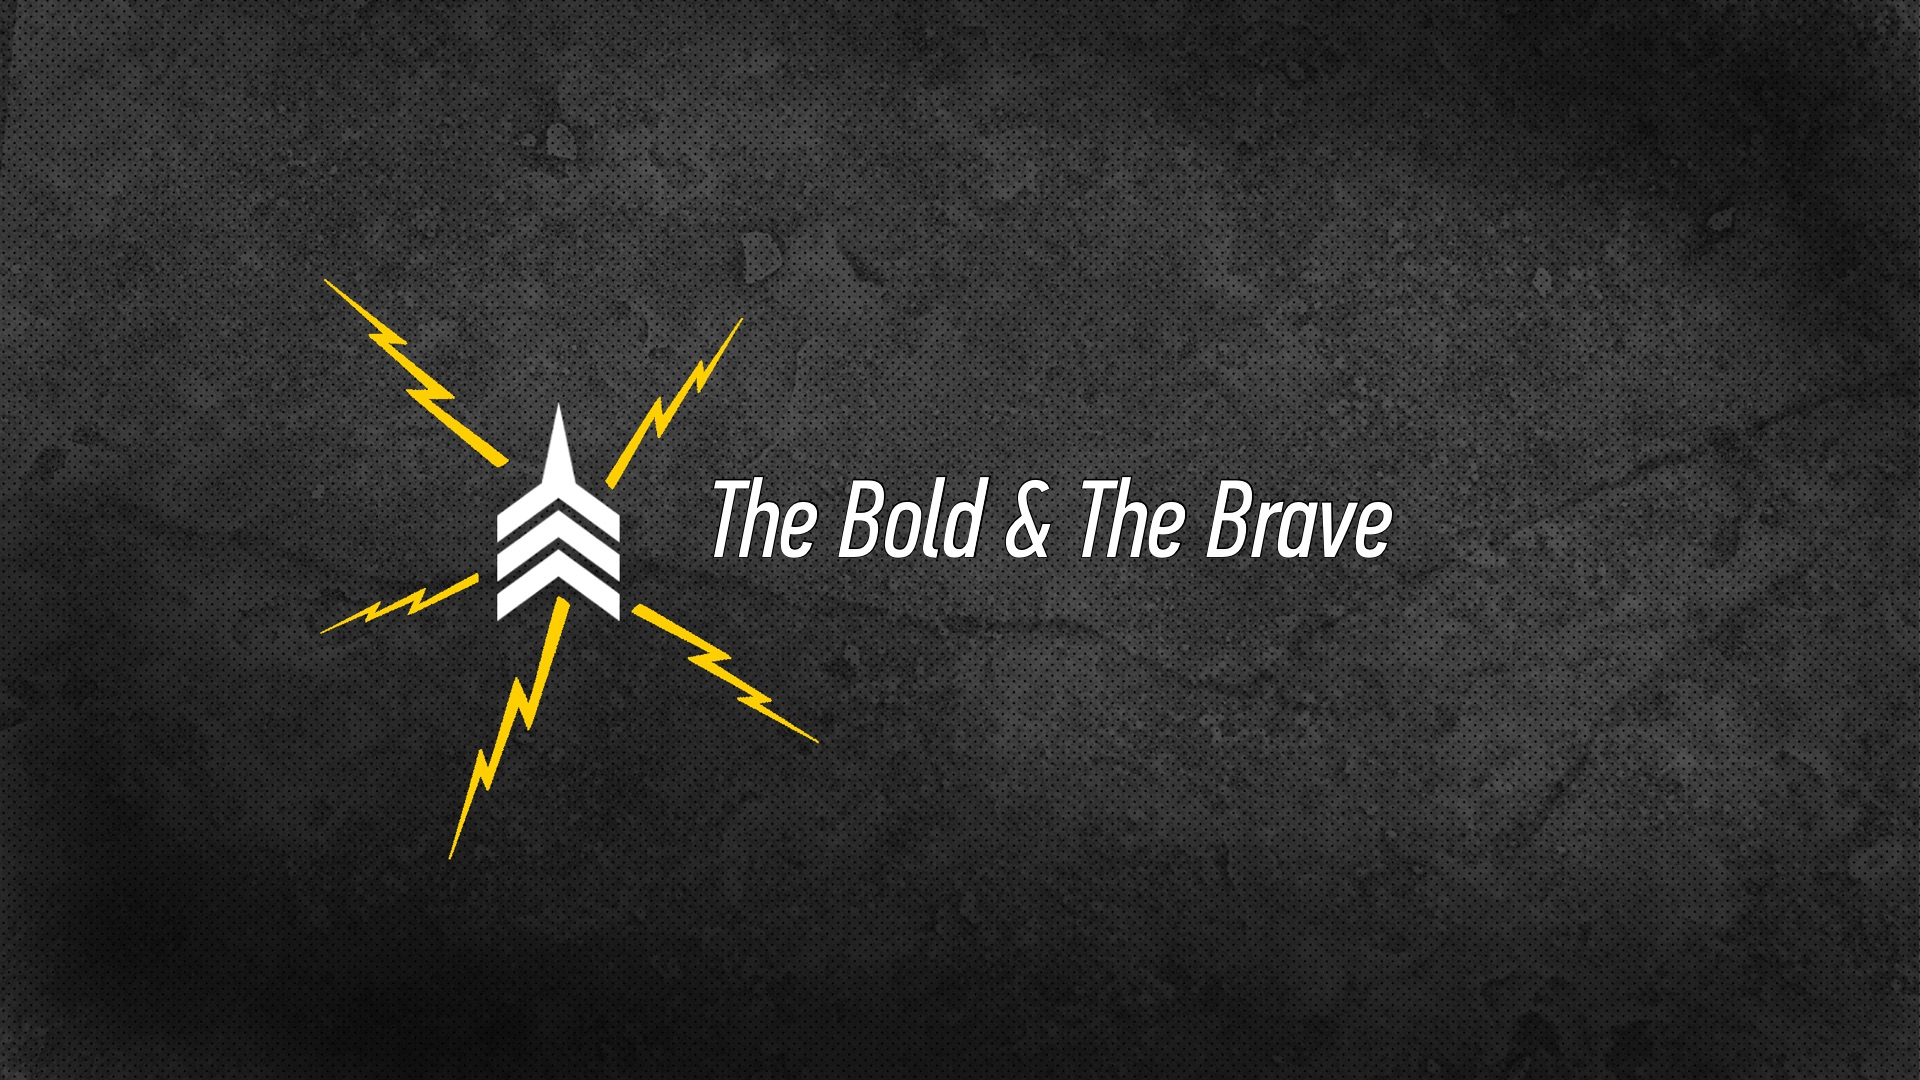 20160703 The Bold & The Brave.jpg